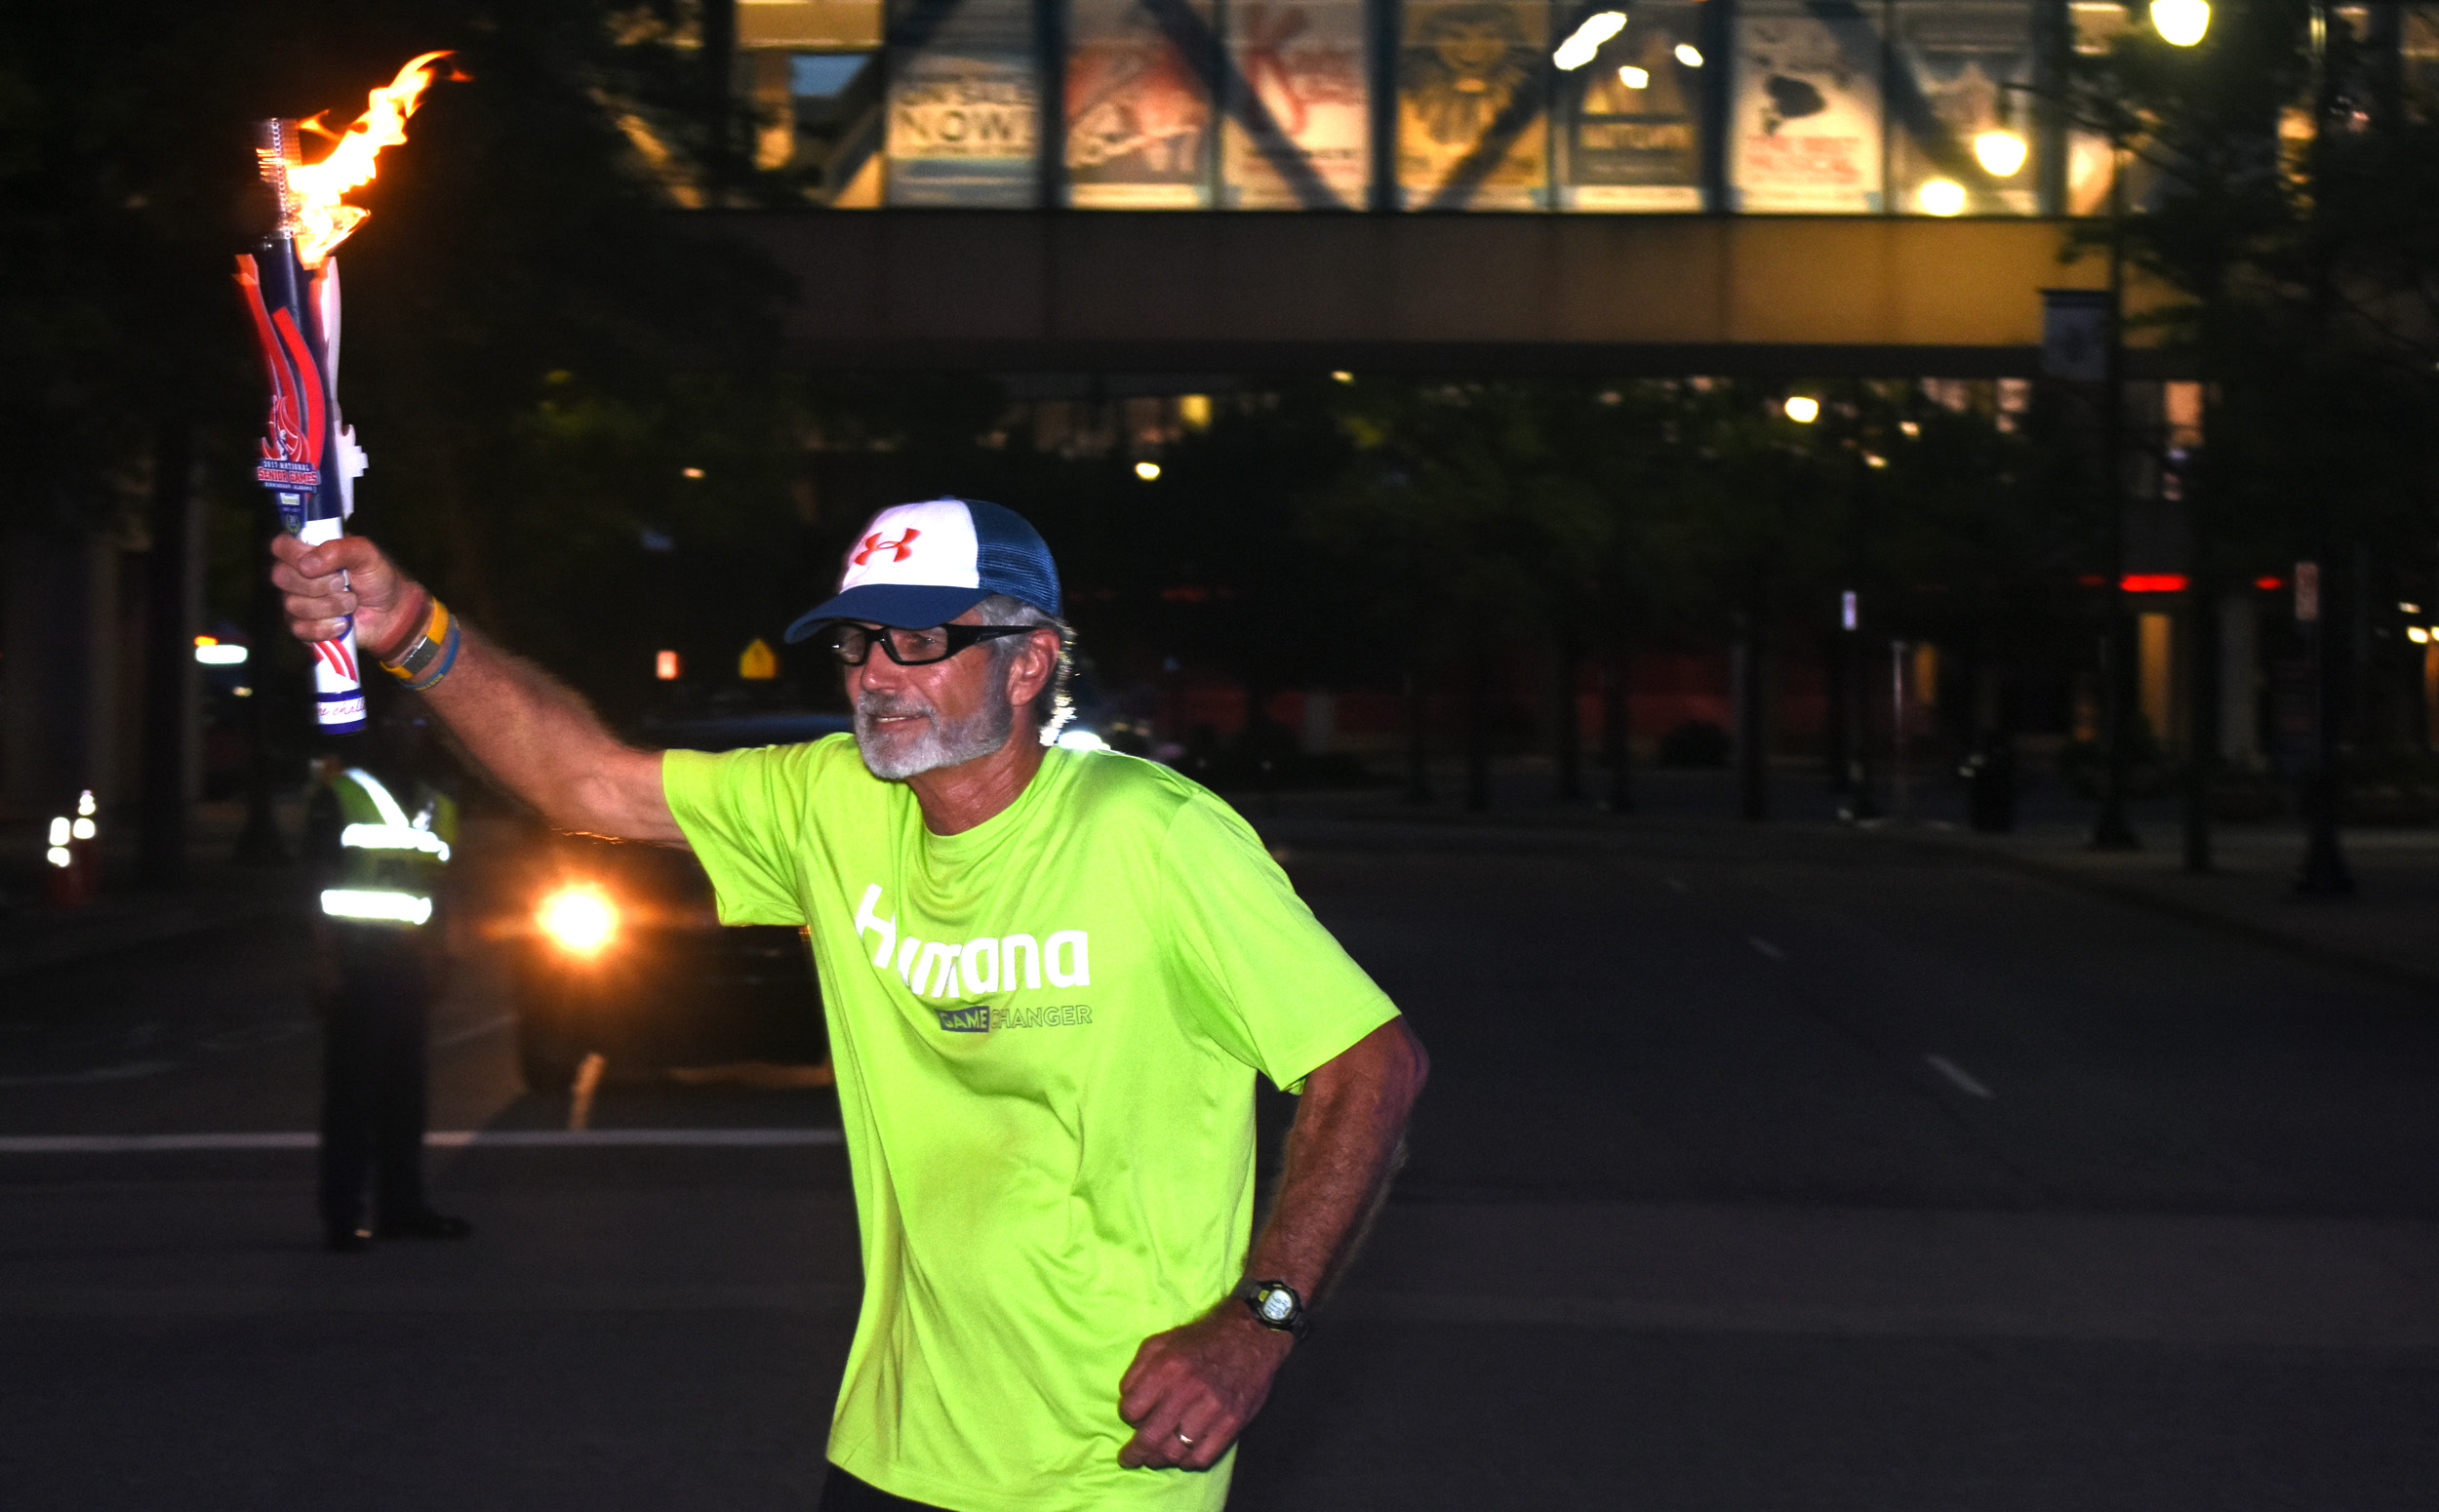 Jim Merritt runs the first leg of the torch run on Friday to signal the start of the 2017 Senior Games in Birmingham. (Solomon Crenshaw Jr. photo).